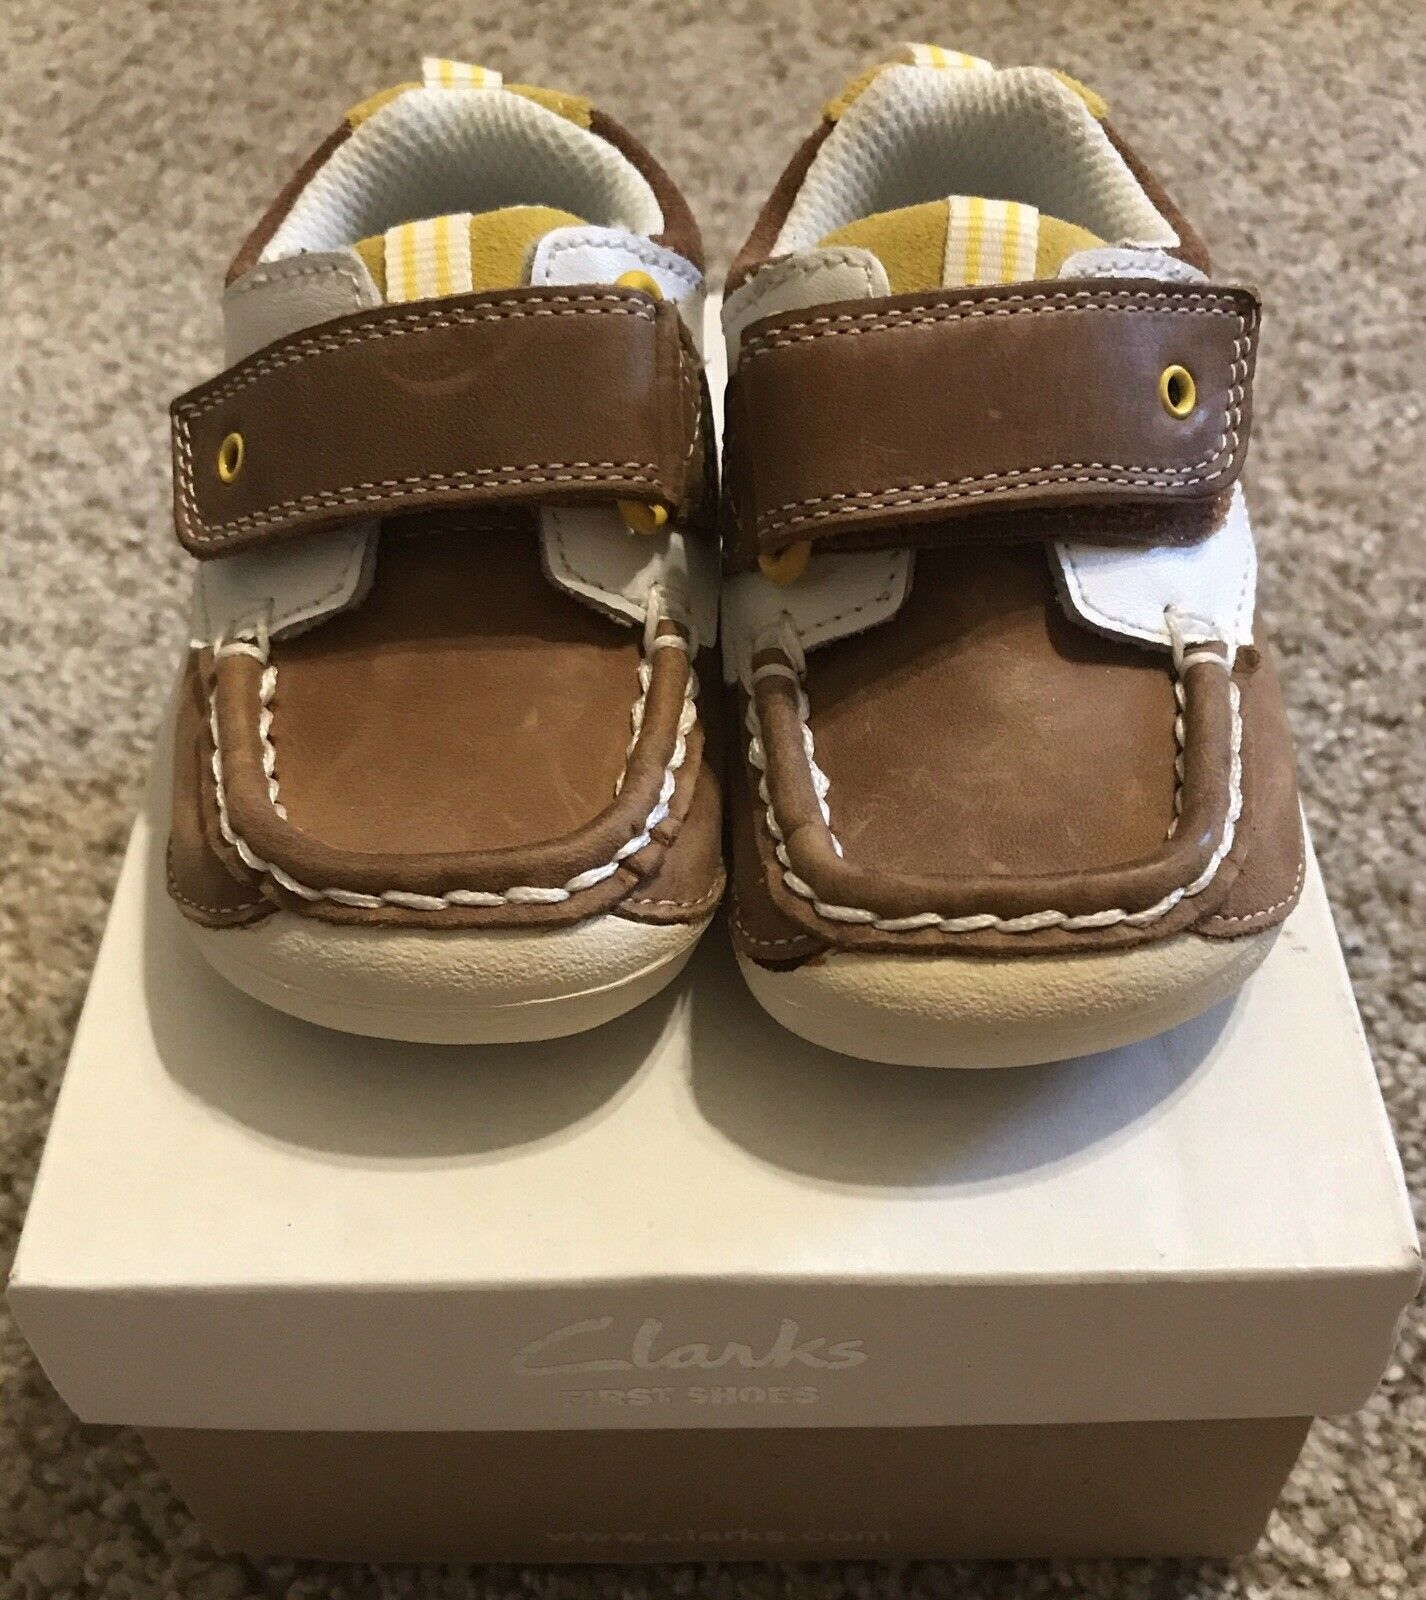 Clarks Cruisers Baby Boy Shoes Size 4 1/2